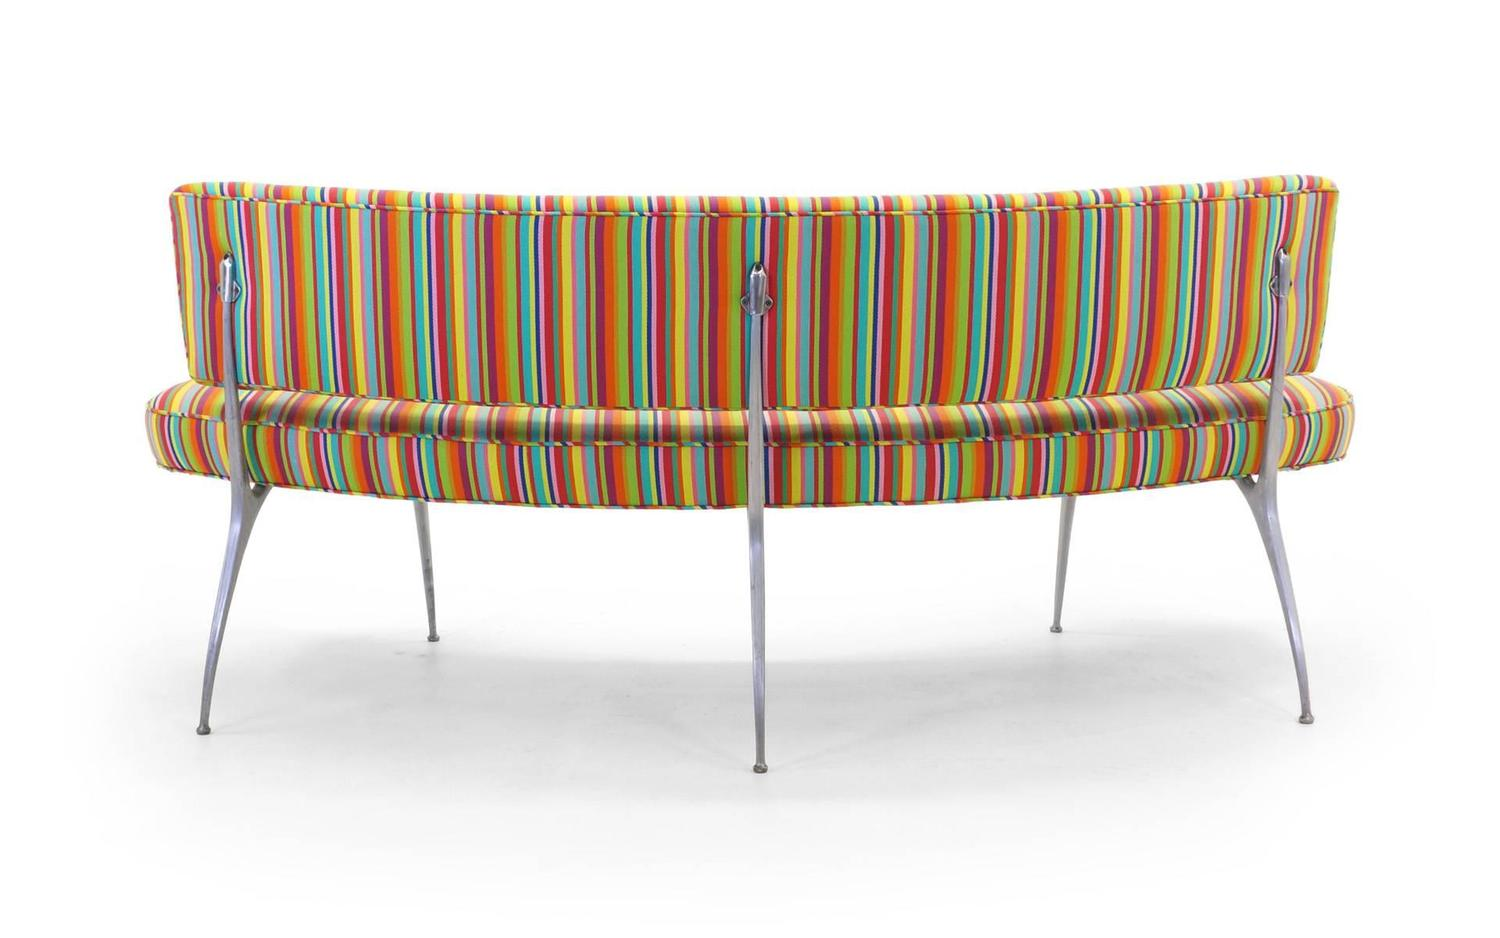 #A76924 Custom Built Curved Sofa / Bench With Impala Chair Legs Alexander  with 1500x938 px of Recommended Curved Settee Bench 9381500 save image @ avoidforclosure.info